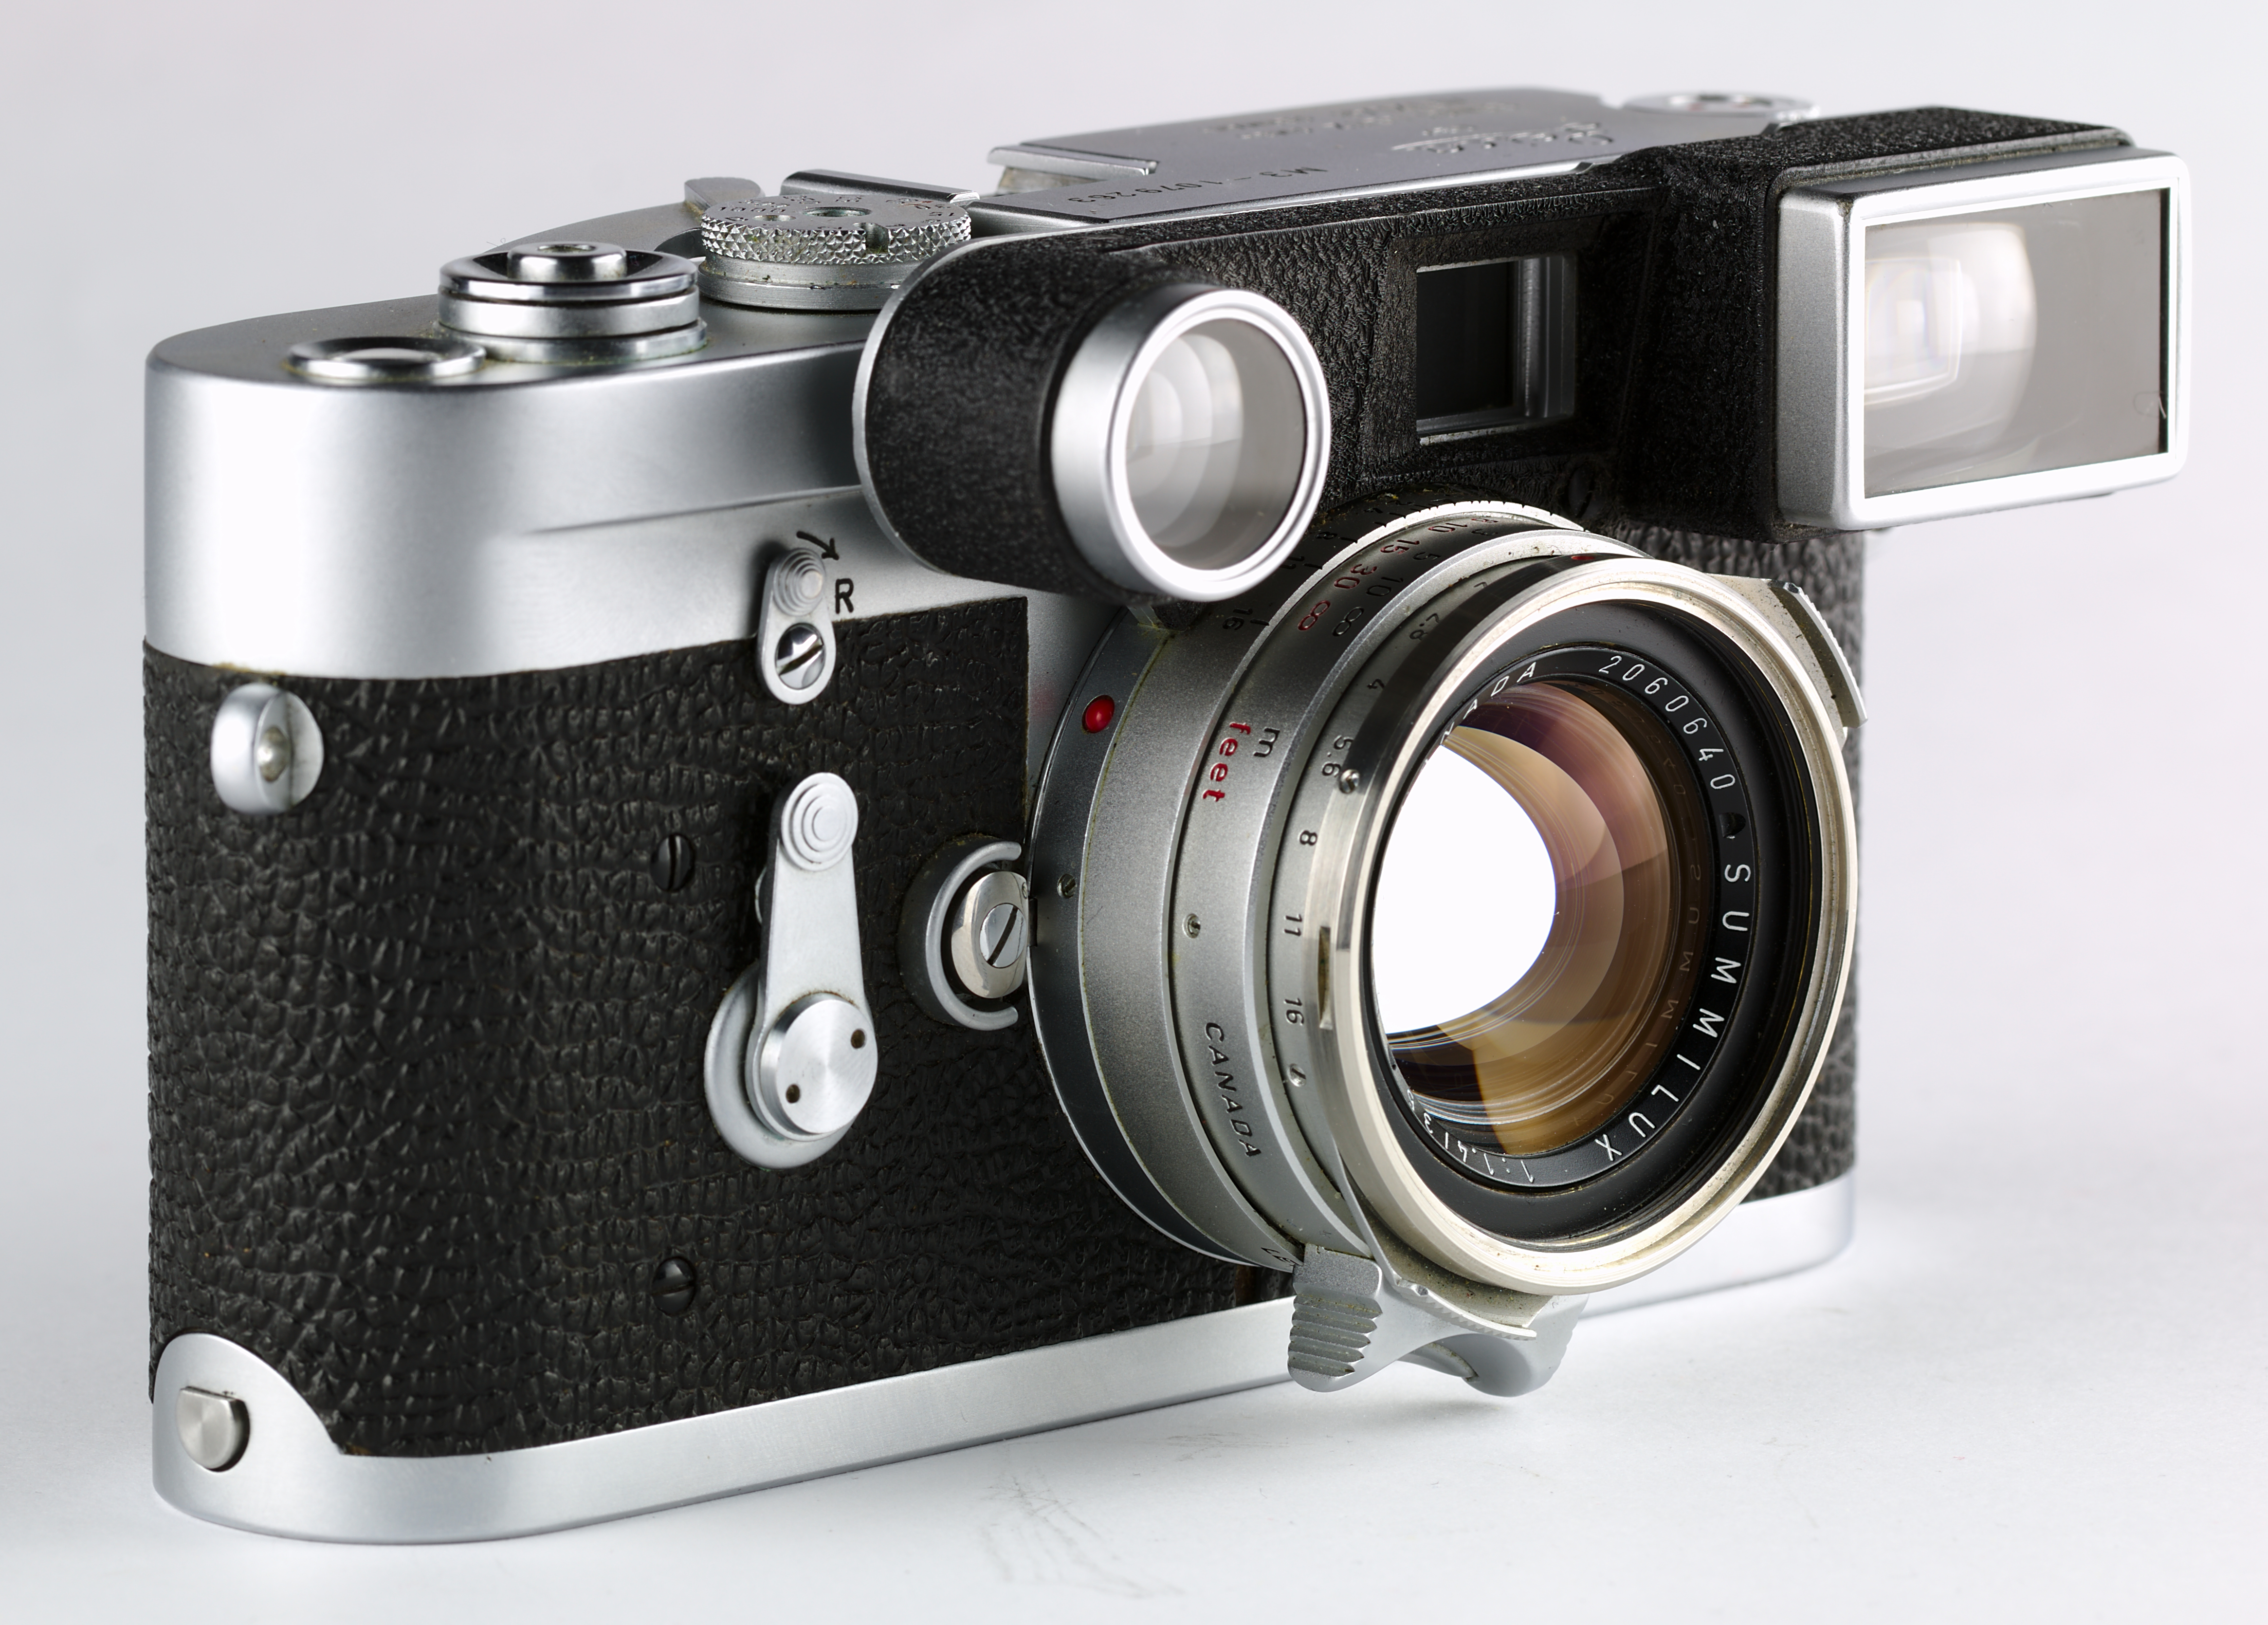 File:Leica M3 with 35mm lens jpg - Wikimedia Commons